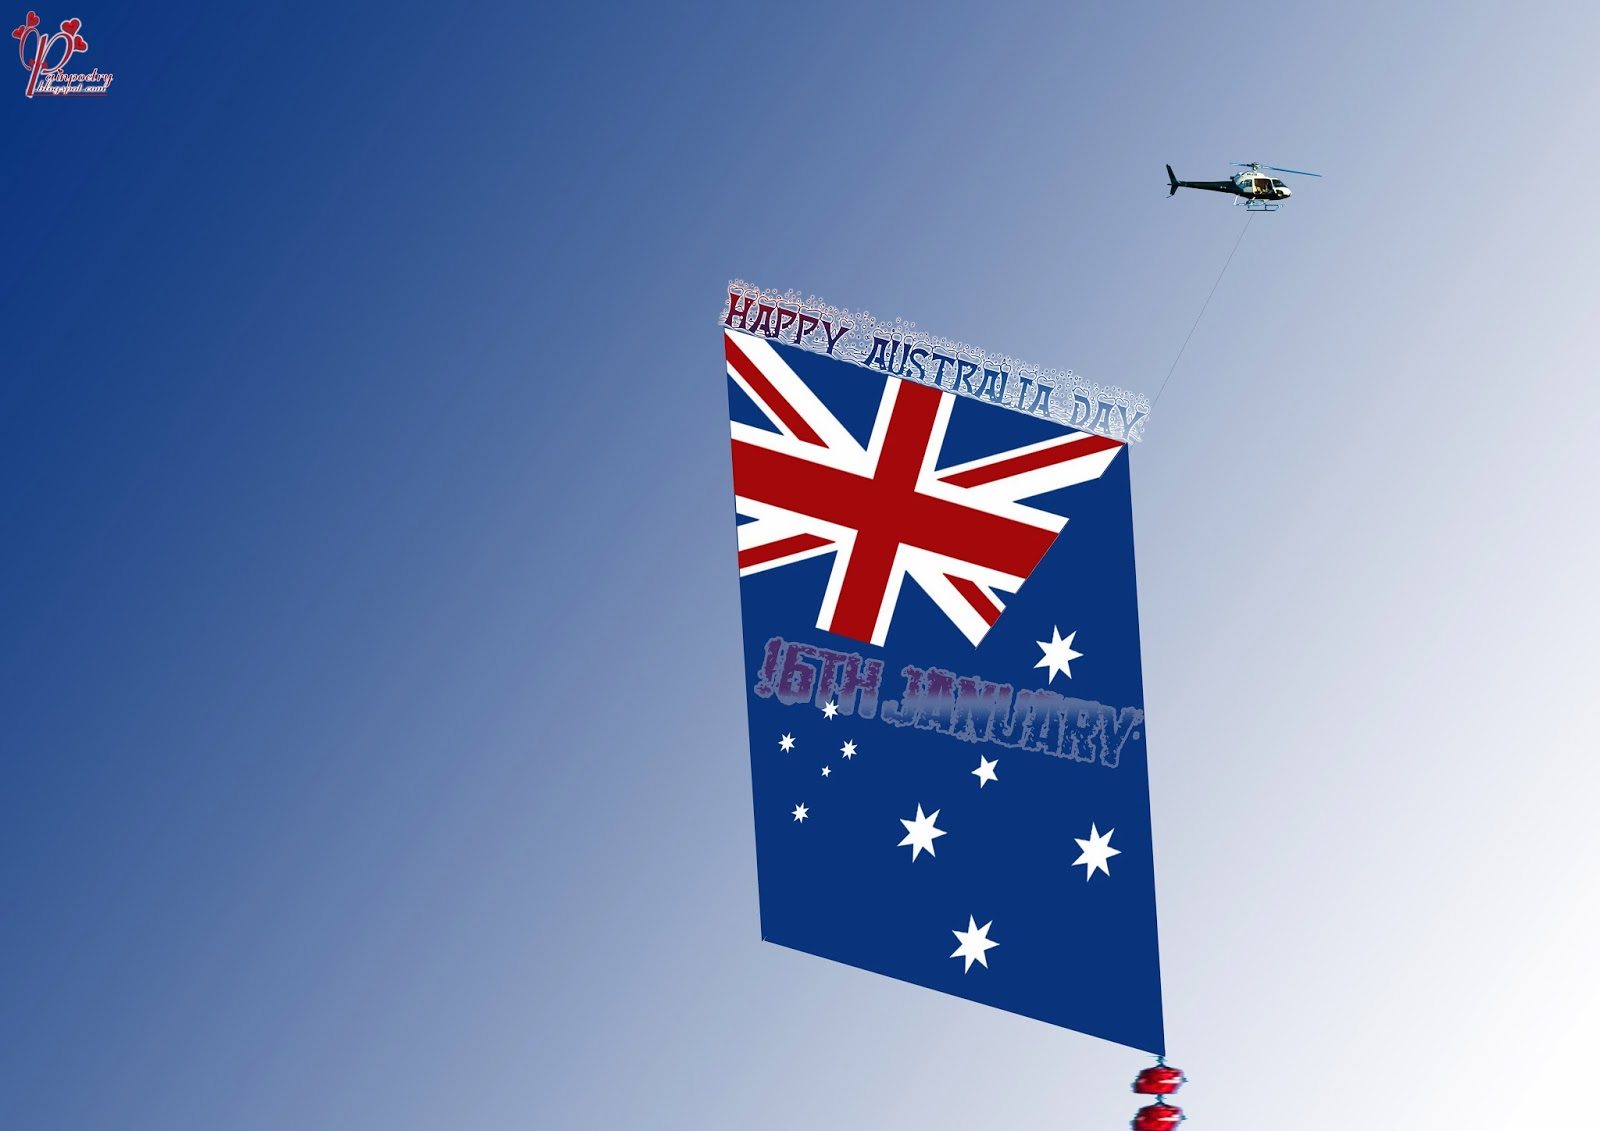 Australia-Day-26-January-Walpaper-Flat-Of-Flag-HD